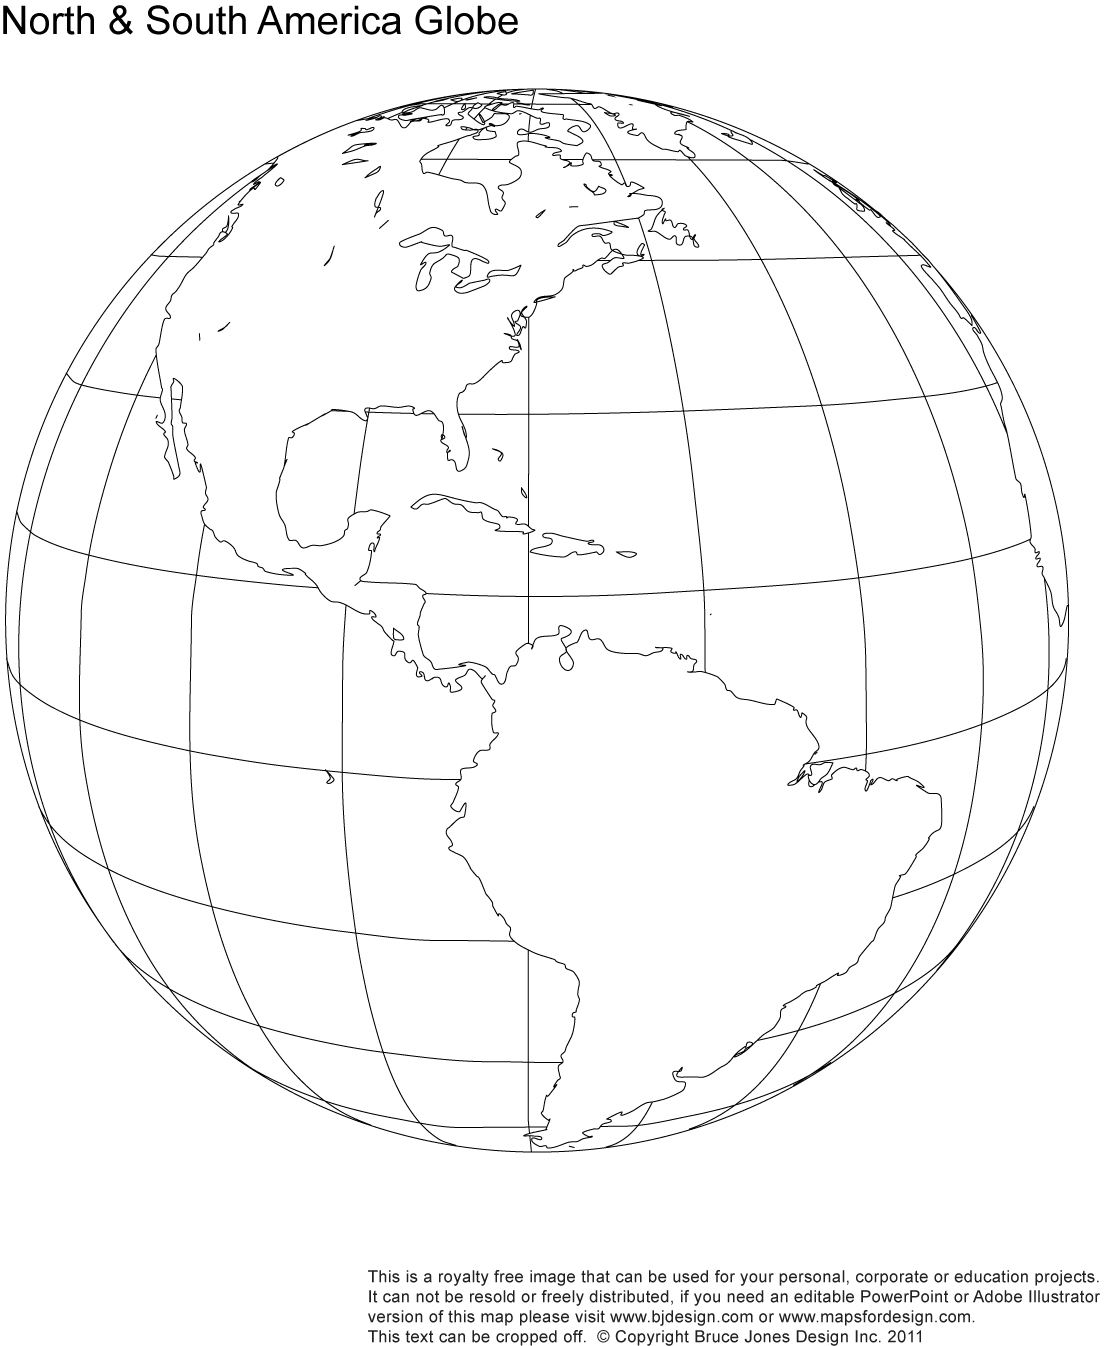 Printable, Blank, World Globe Earth Maps • Royalty Free, jpg on earth map usa, globe earth map, globe world map, globe map of yemen, globe map of france, globe map of israel, globe map of egypt, globe map of haiti, globe map of netherlands, globe map of new zealand, globe map of holland, globe map of malaysia, globe canada, new 7 wonders of usa, globe map of greece, globe map of guyana, map from usa,